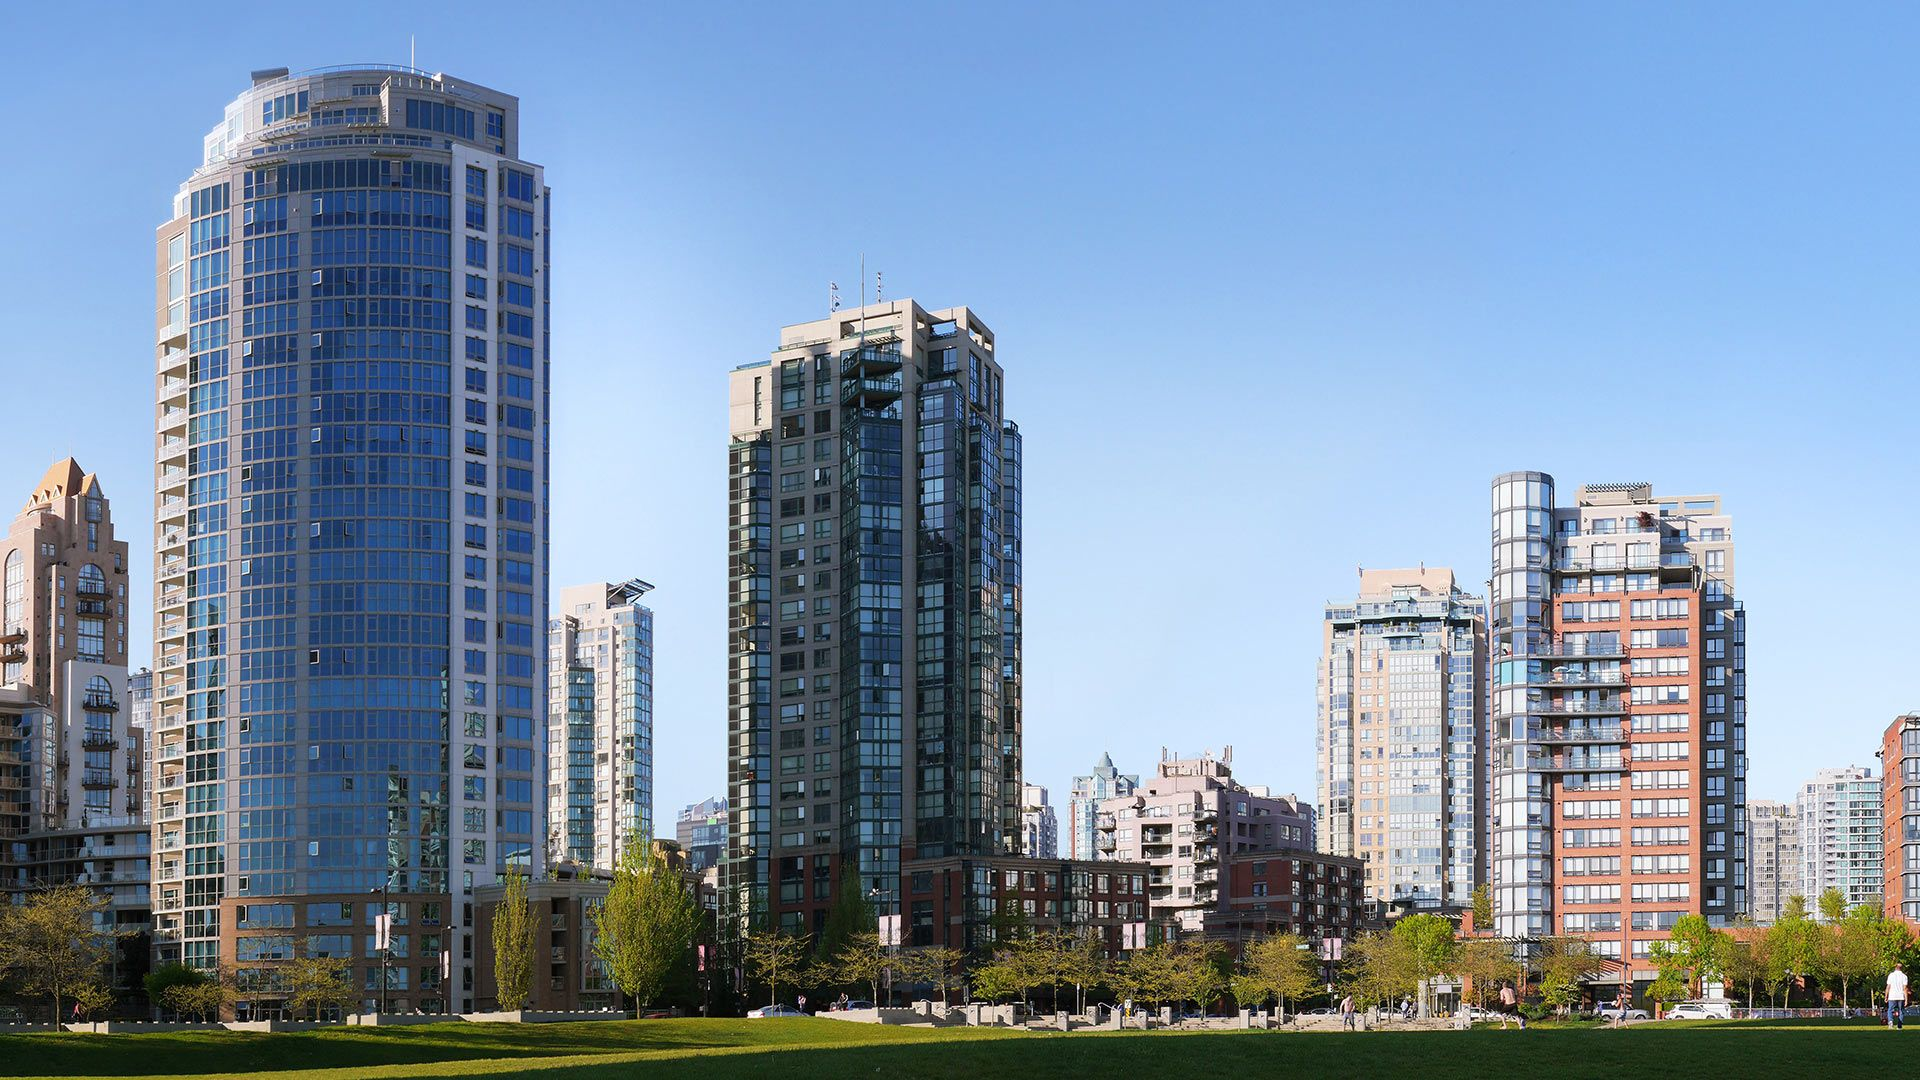 Main Photo: 10 900 Beatty Street in Vancouver: Yaletown Condo for sale : MLS®# MRP2820